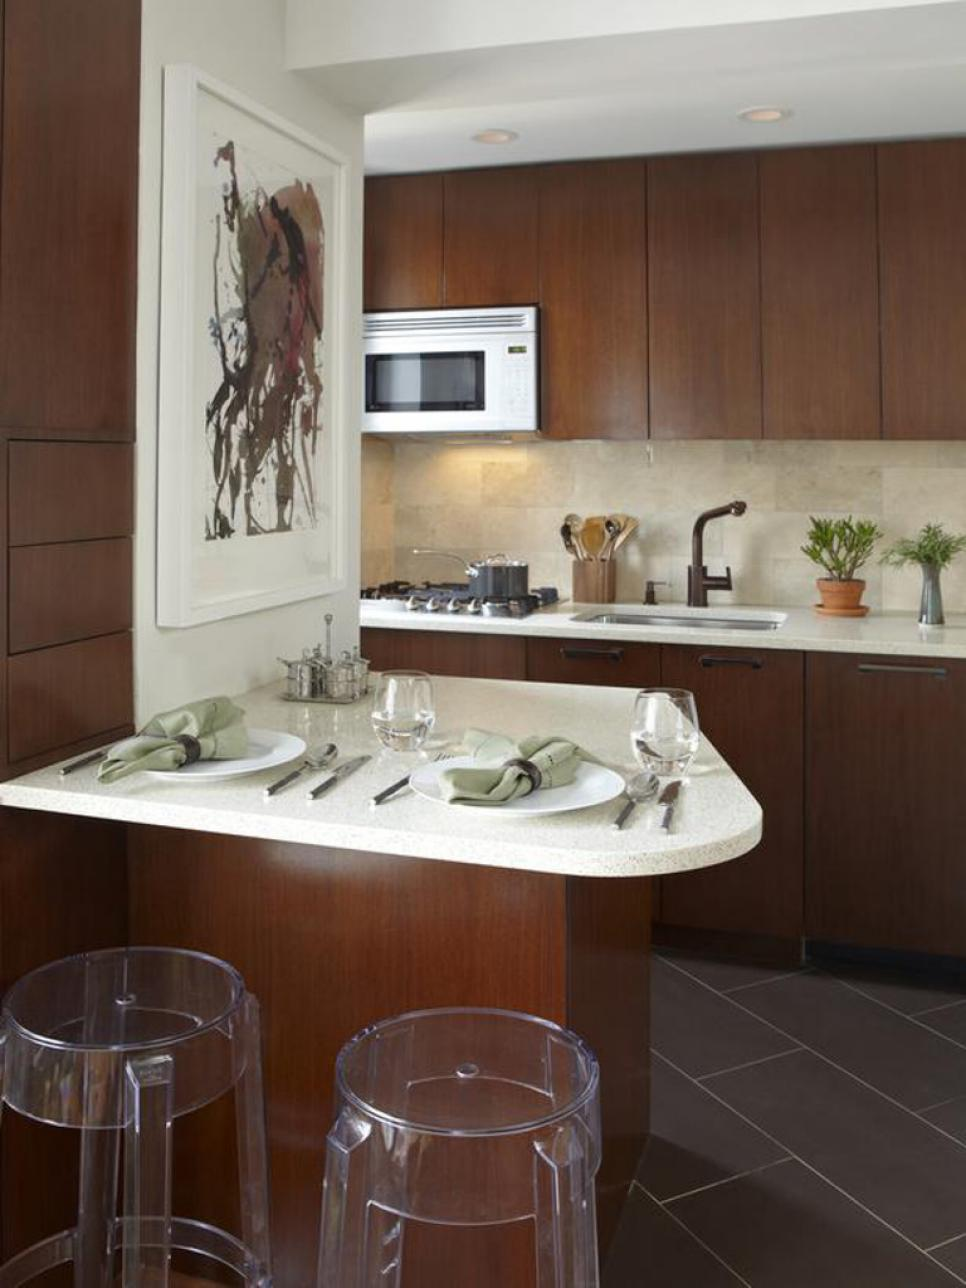 from outdated to sophisticated - Kitchen Design Ideas For Small Kitchens